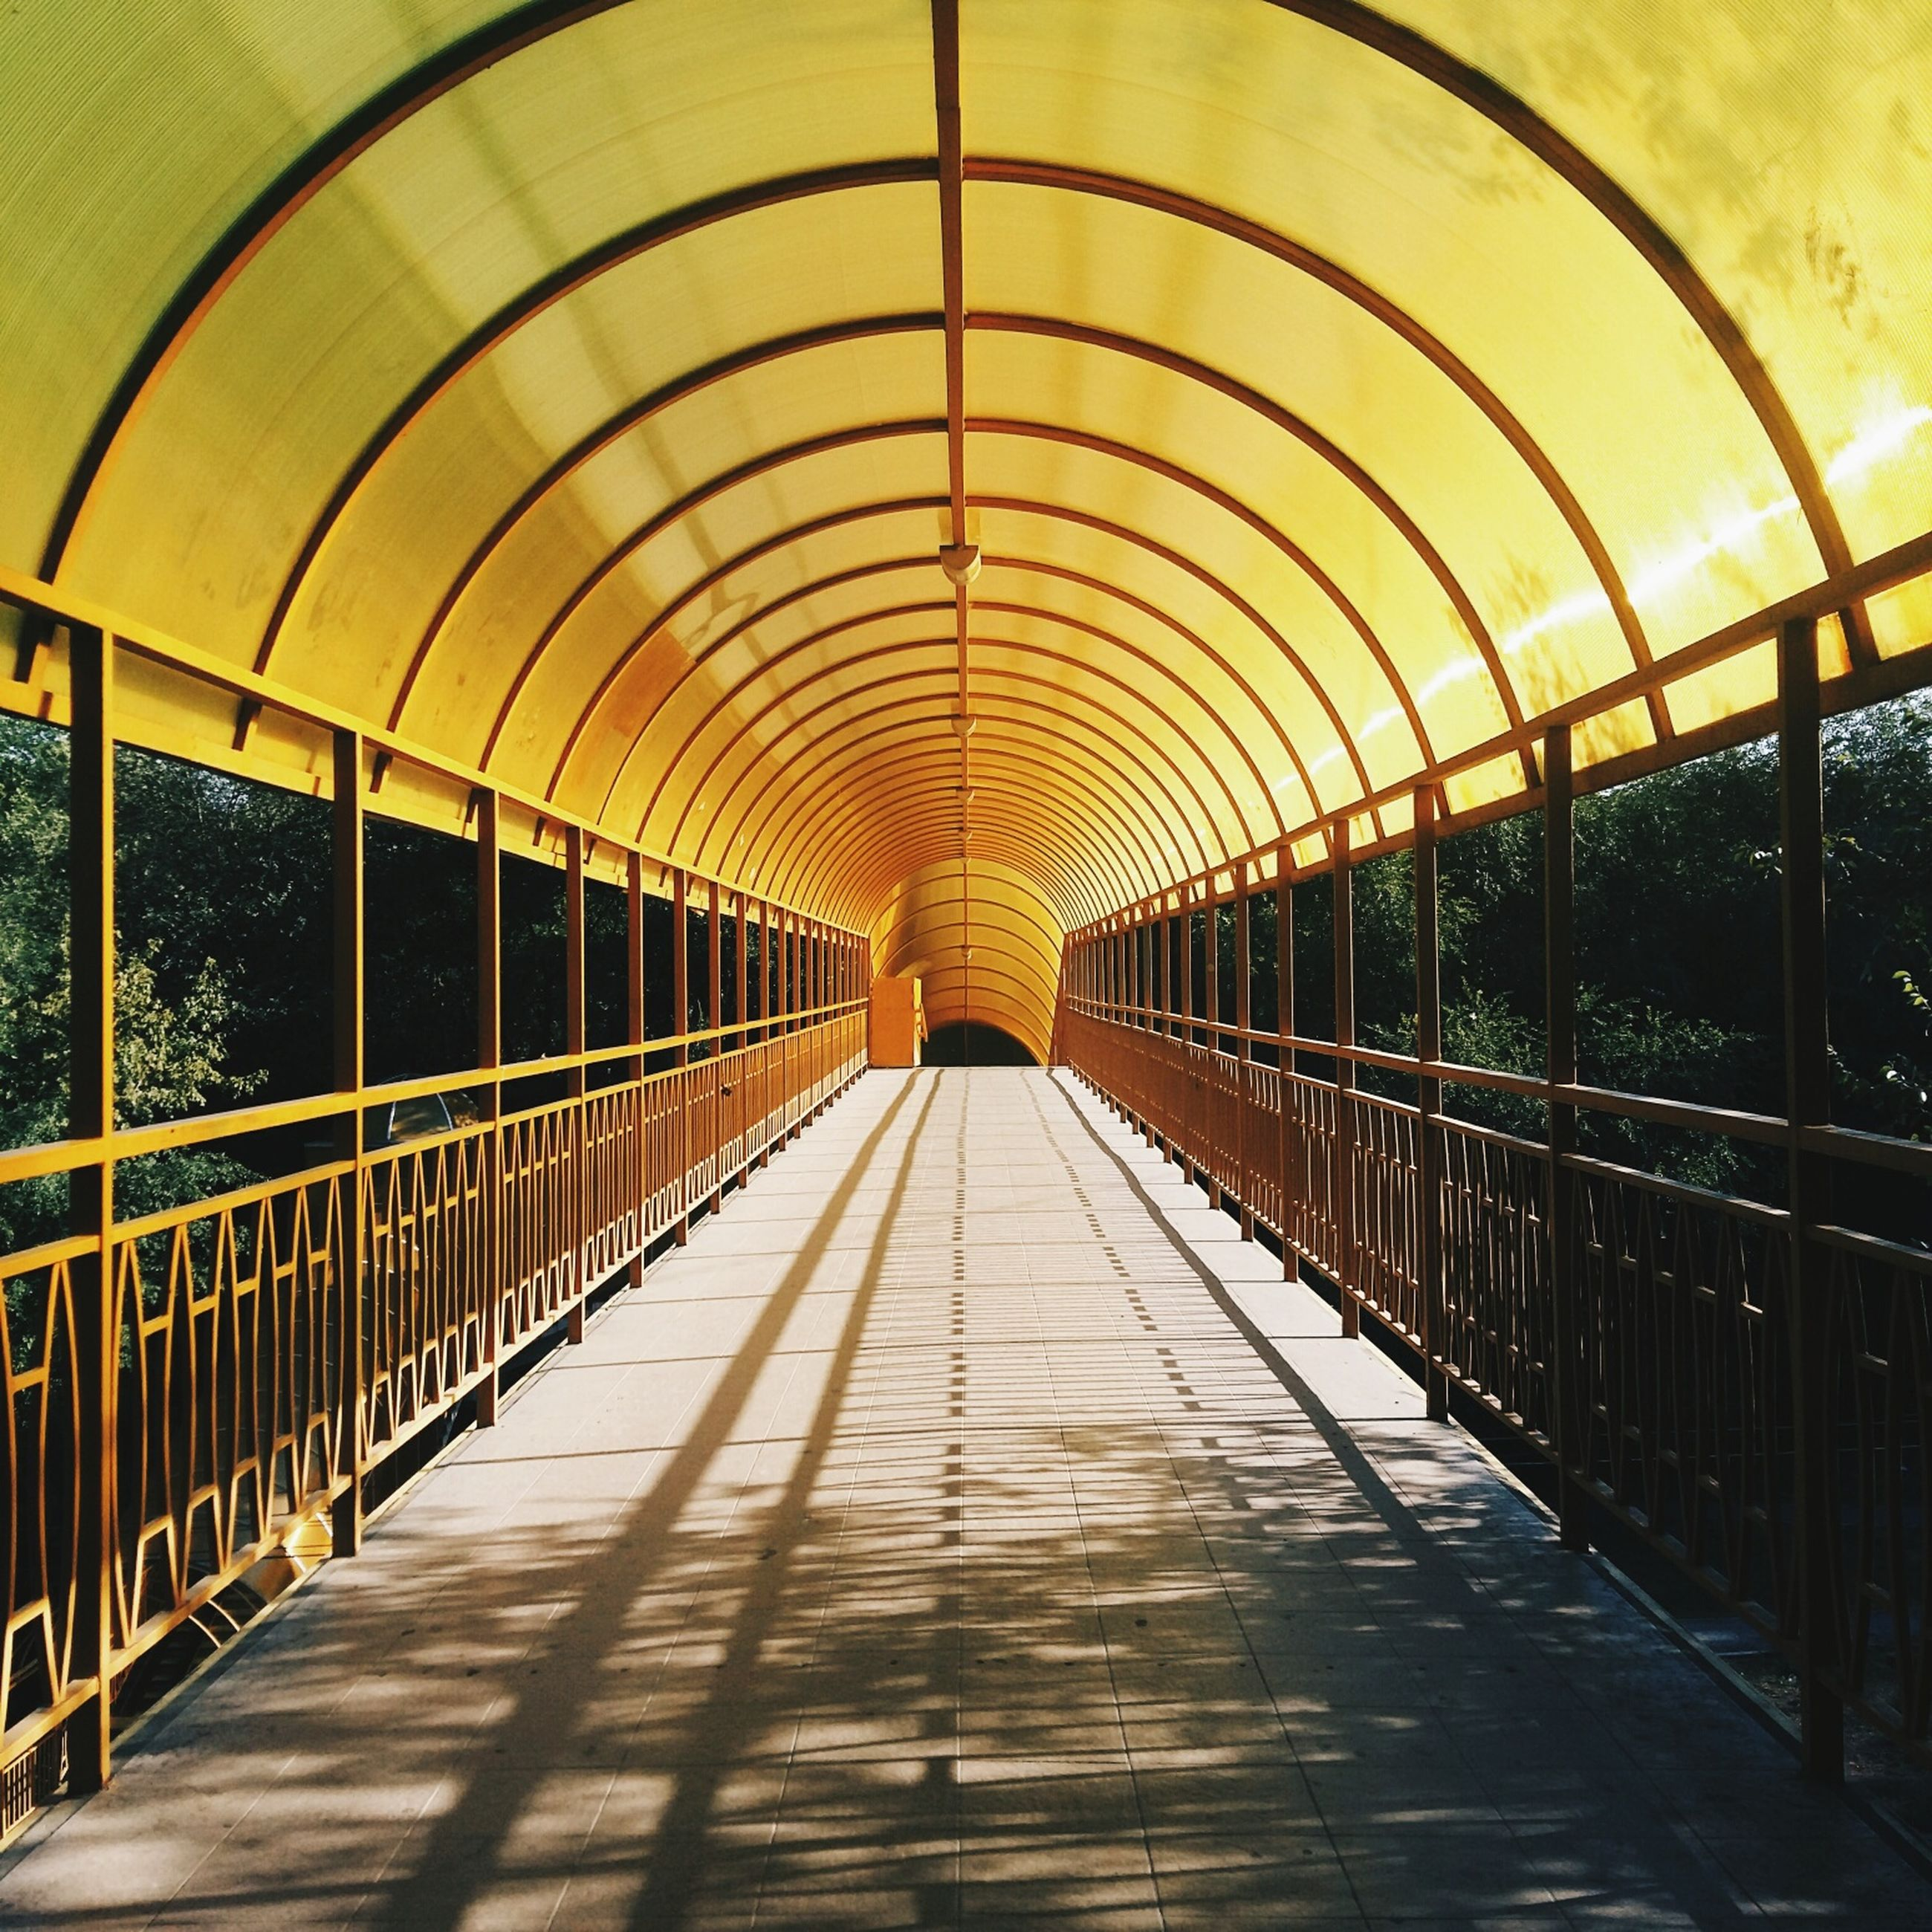 architecture, built structure, arch, the way forward, indoors, no people, day, nature, elevated walkway